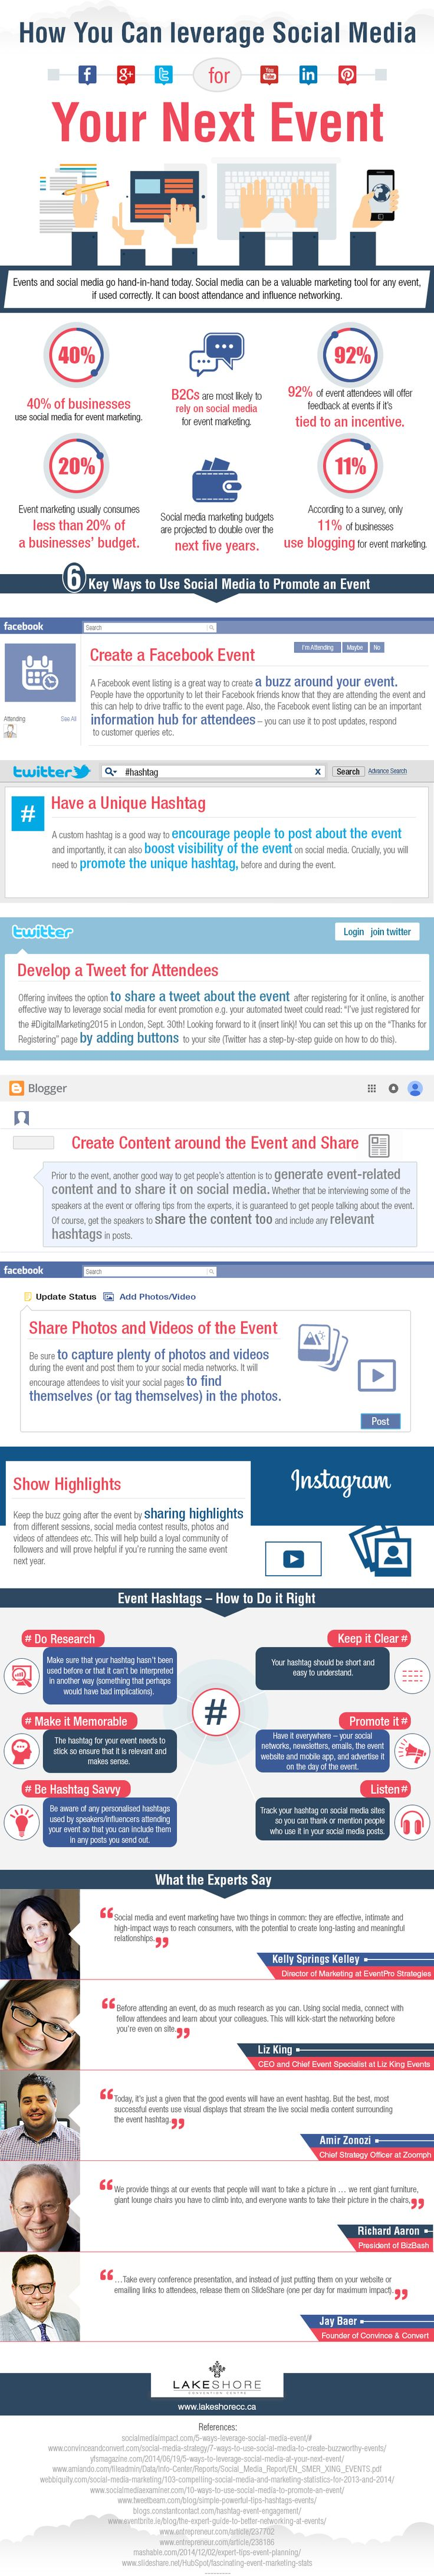 How to leverage social media for event marketing.  • Social media marketing budgets are projected to double over the next five years. • Yet—less than half of businesses use social media for event marketing, and just 11% use blogging to market events. • A Facebook event listing can serve as an information hub for attendees. Companies can use this to promote the event, post updates, and respond to inquiries.  More...  #socialmedia #events #marketing